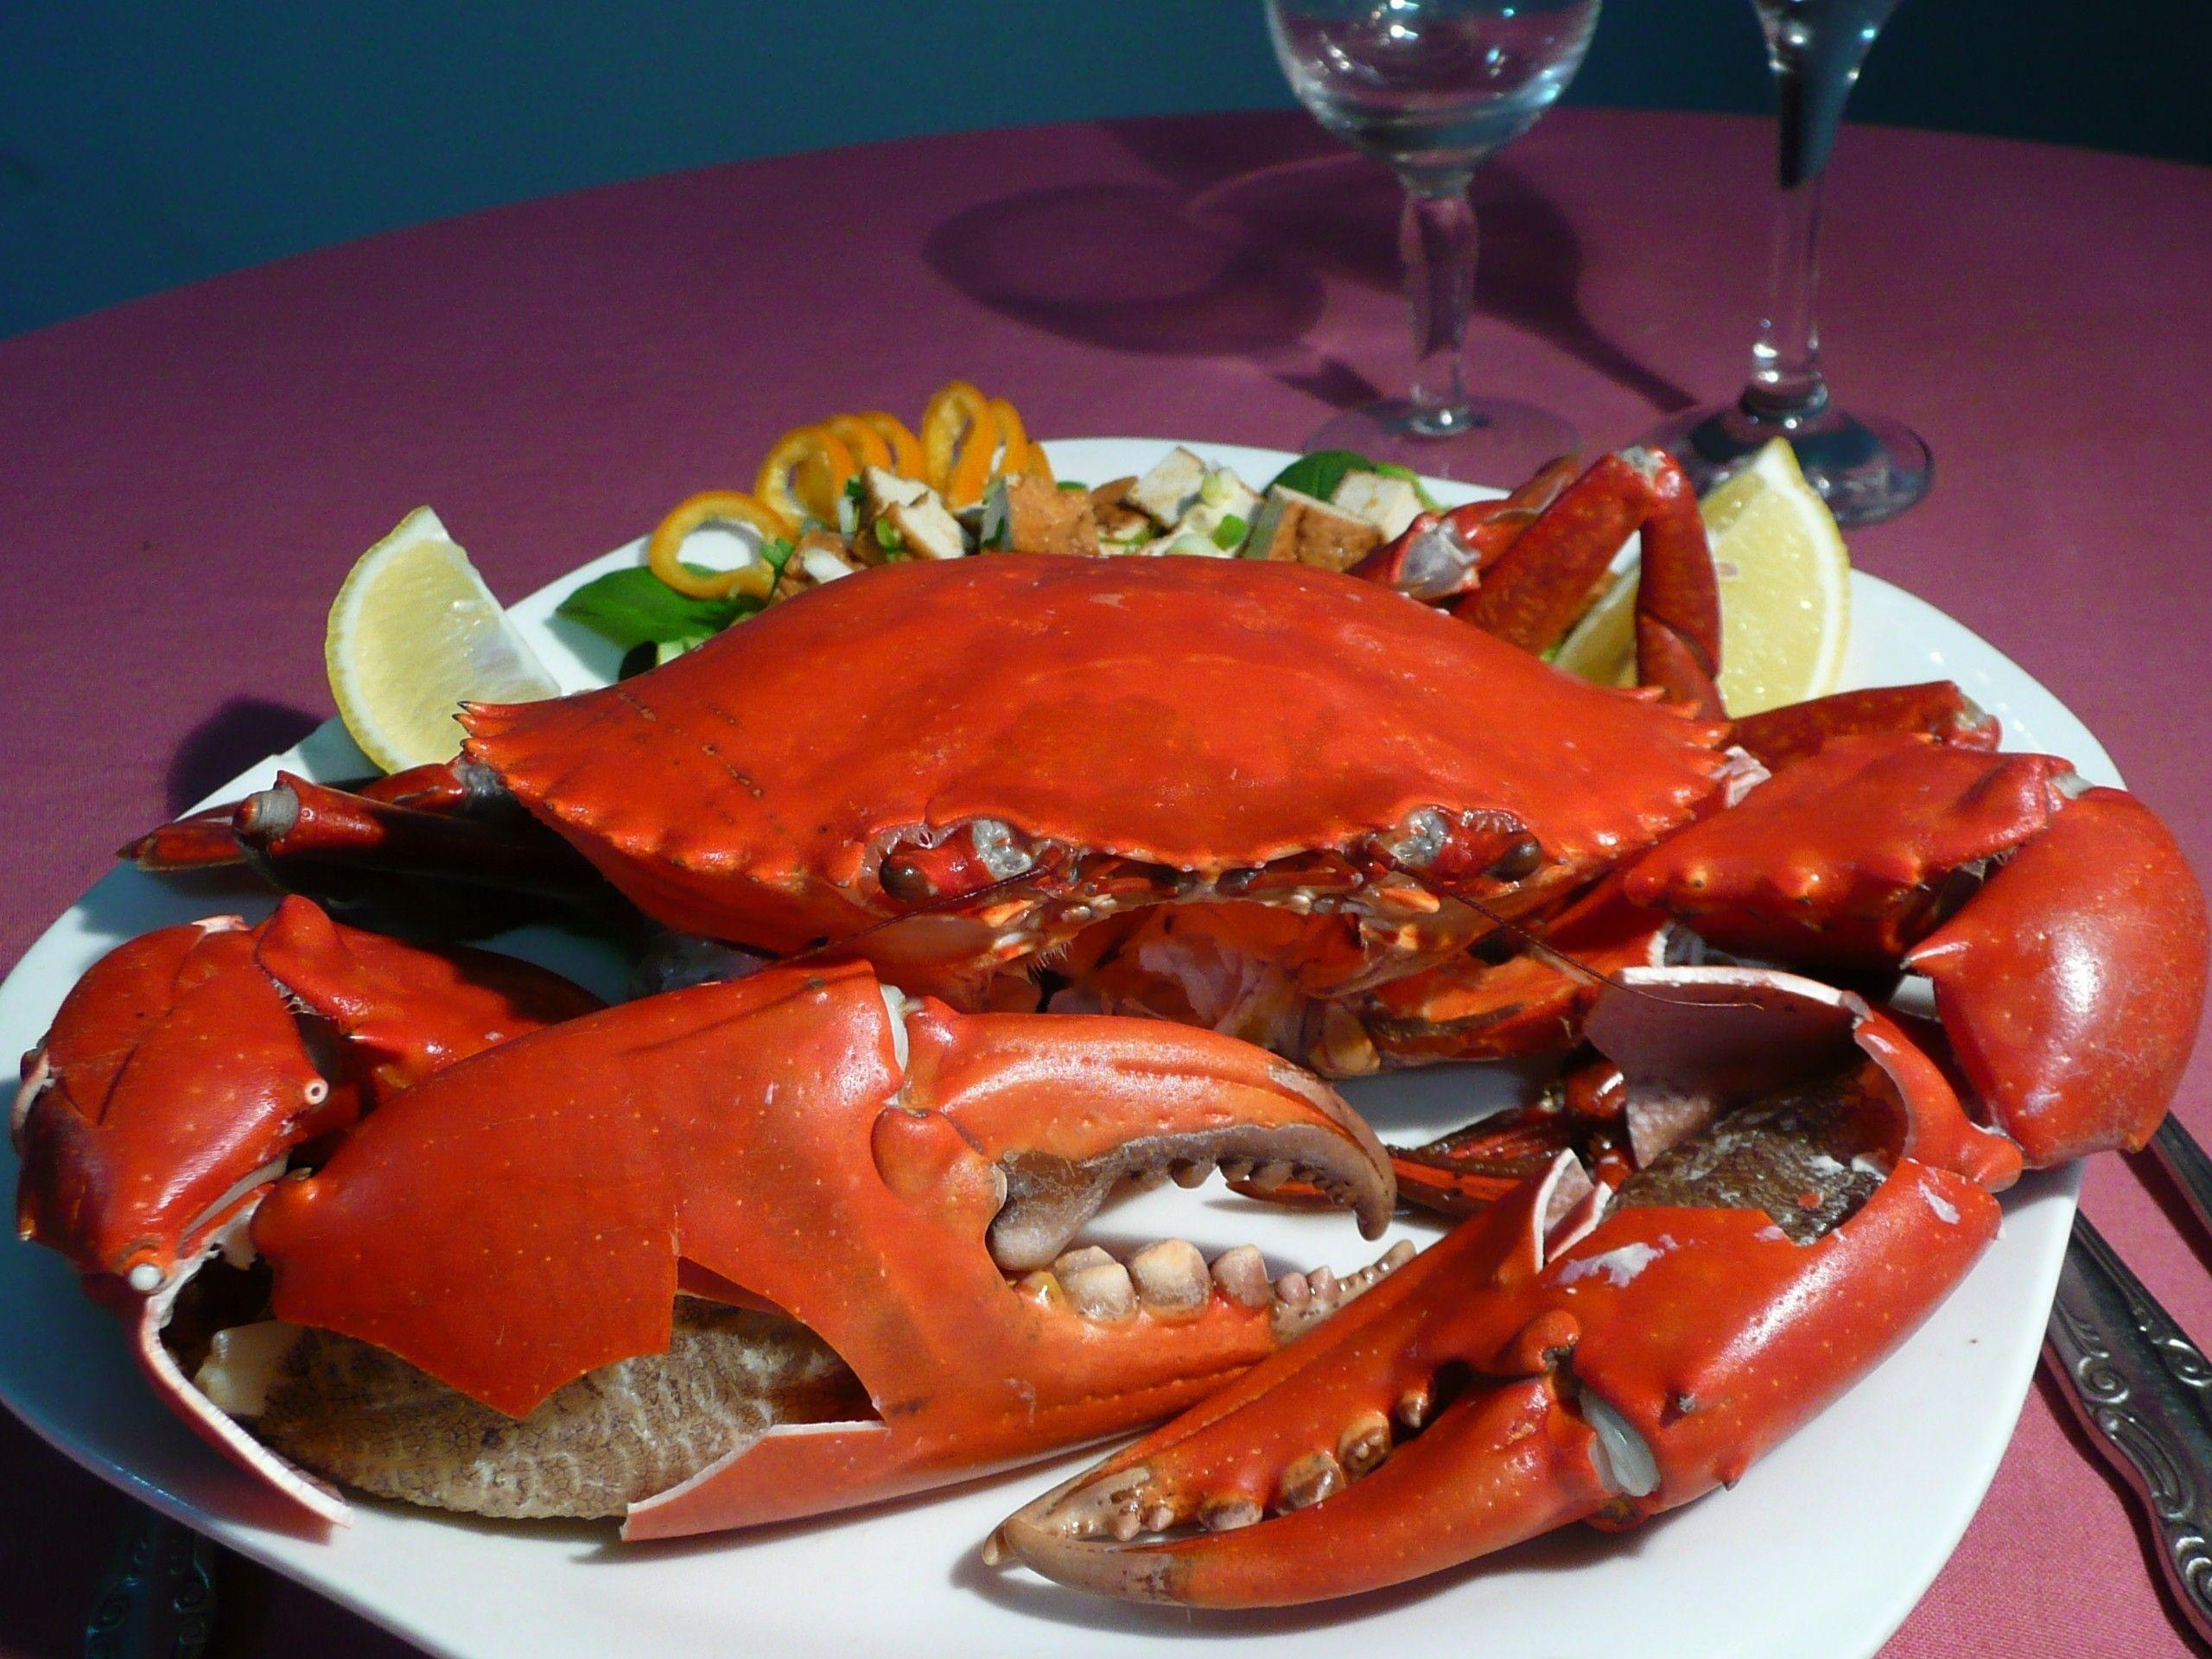 17 best images about Seafood on Pinterest | Linguine, Lobsters and ...